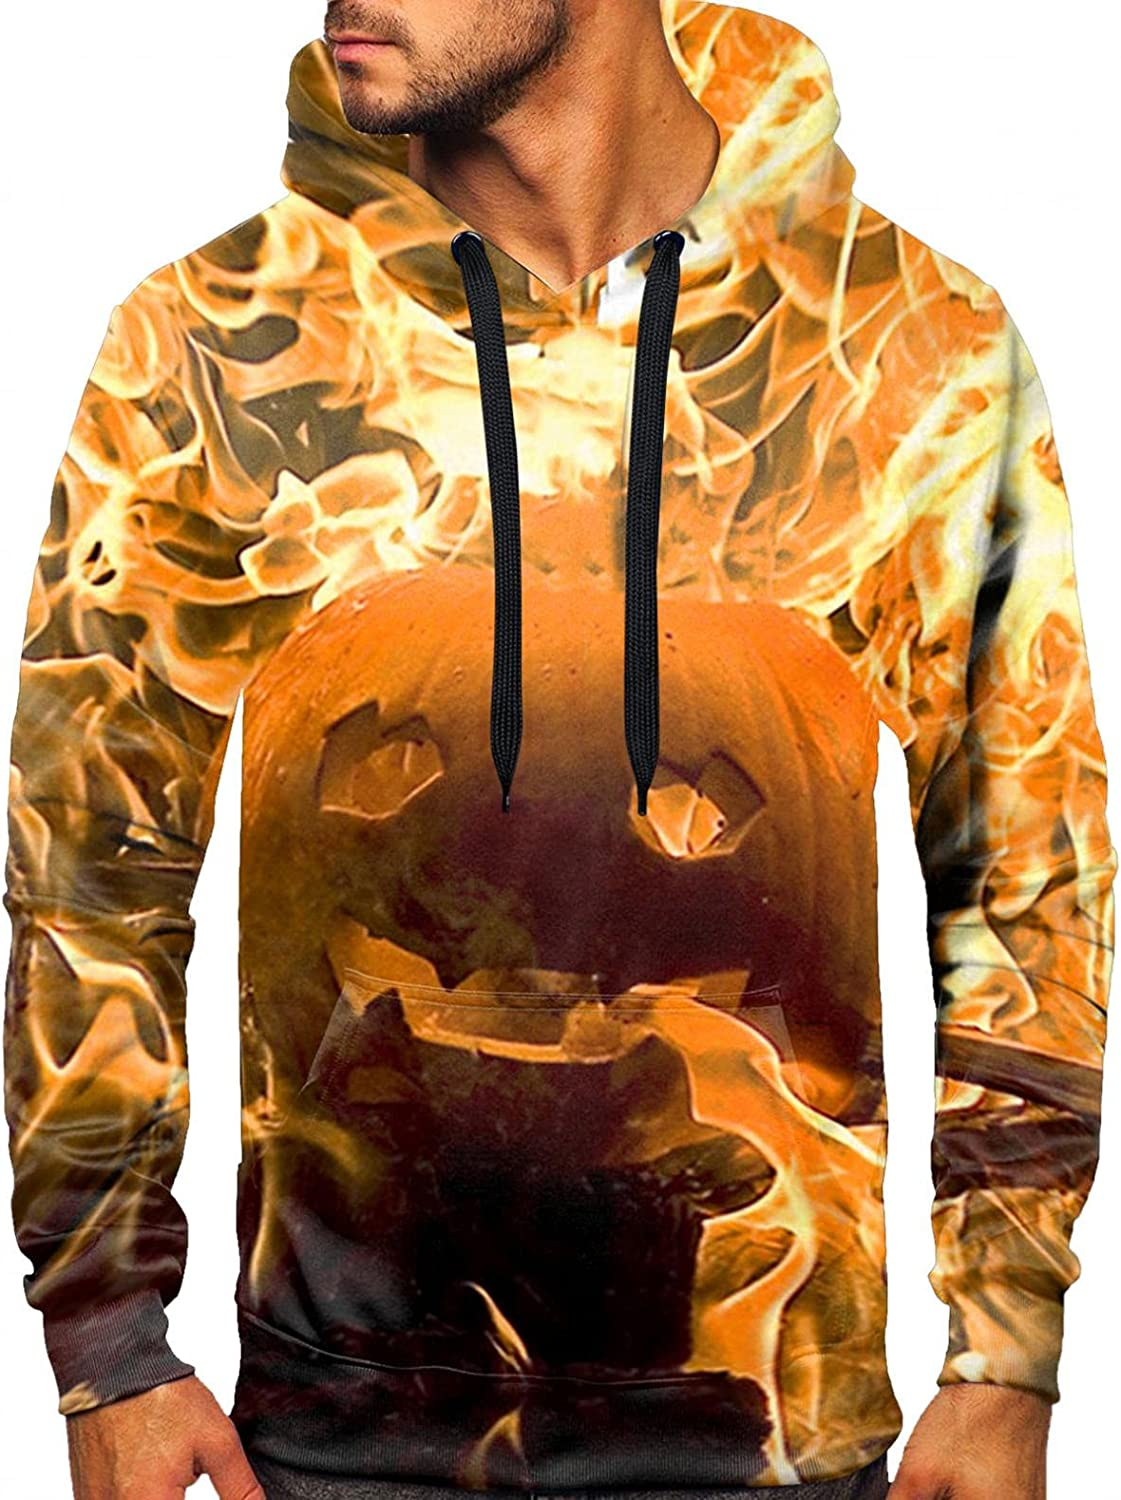 Novelty Hoodies Men 3D Printed Graphics Pocket Pullover Hooded Sweatshirts for Christmas Halloween Long Sleeve T-Shirts